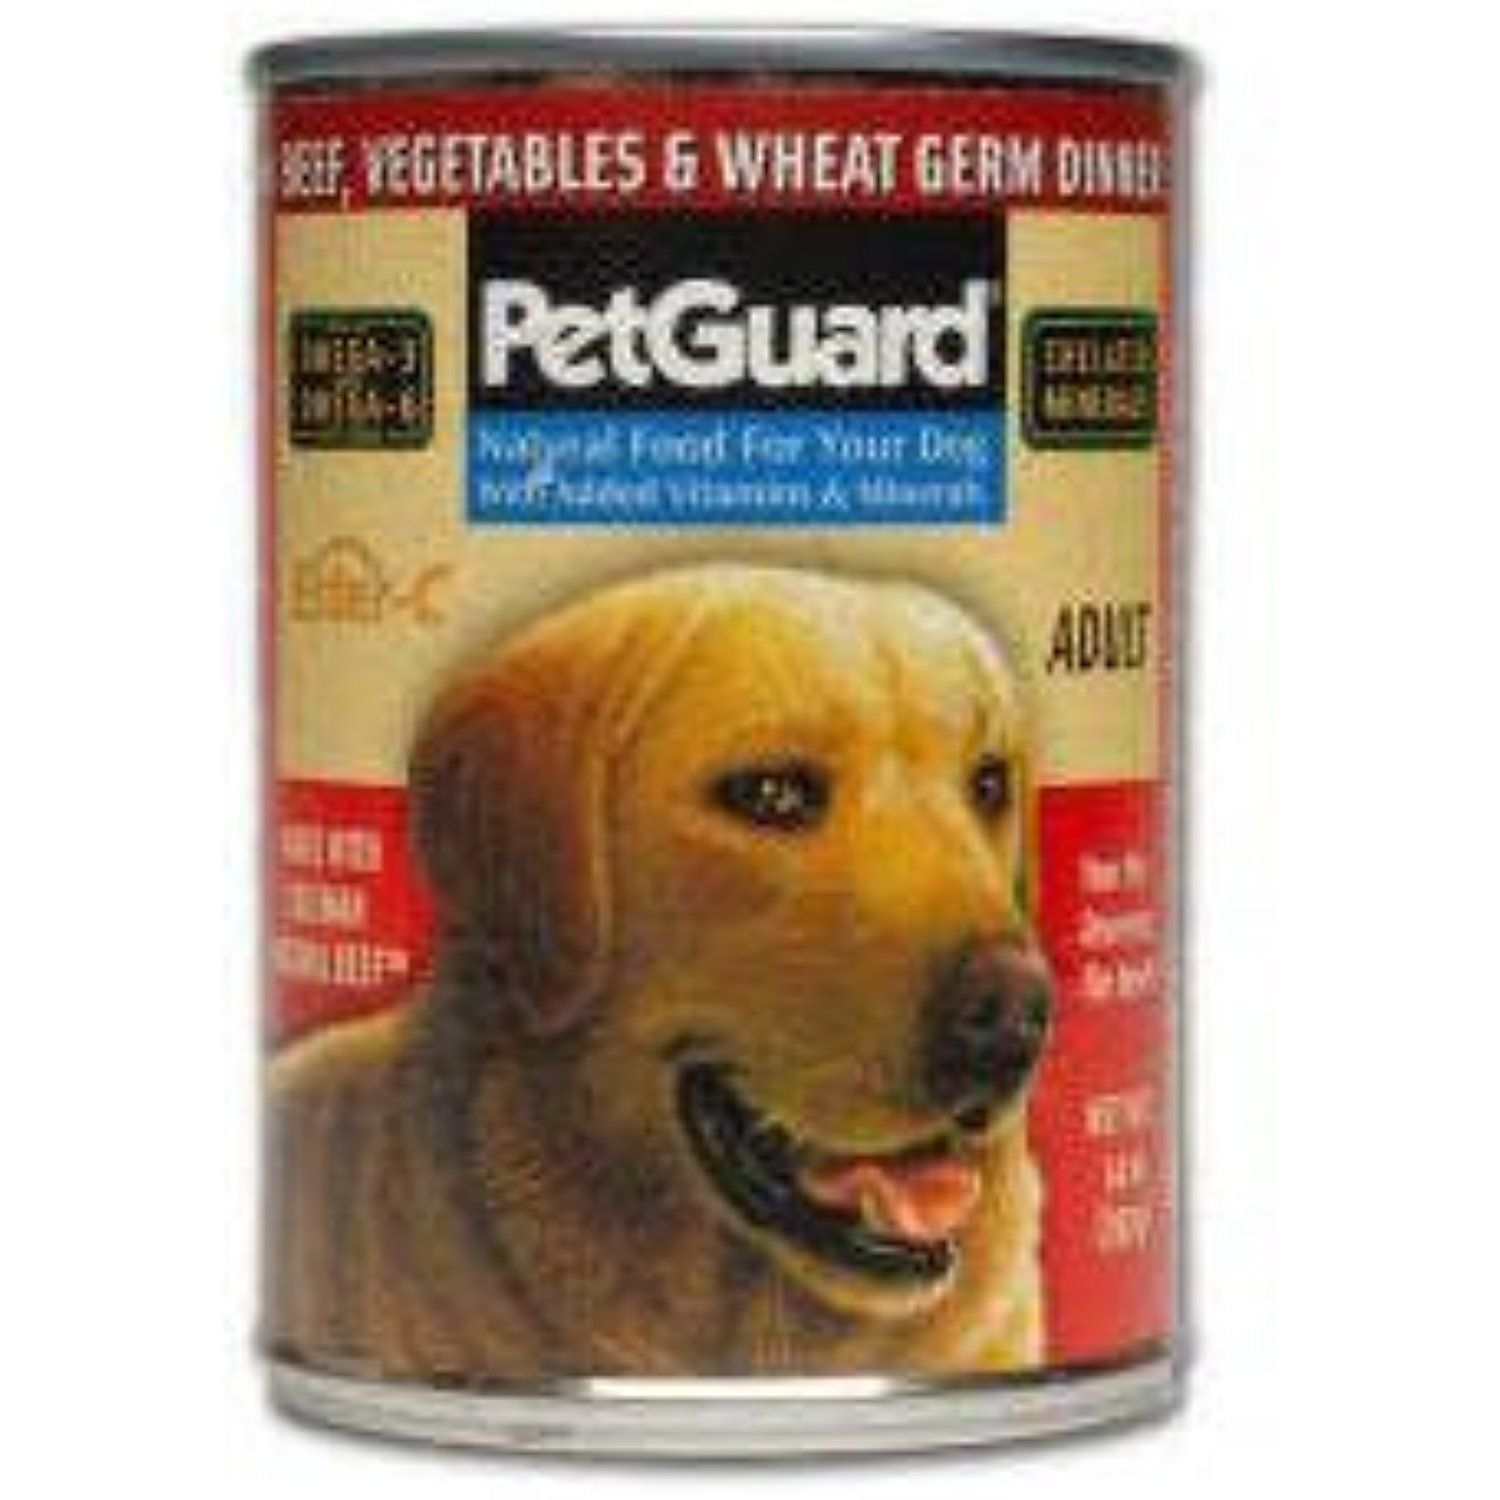 PetGuard Beef & Vegetable & Wheat Germ Dinner for Adult ...